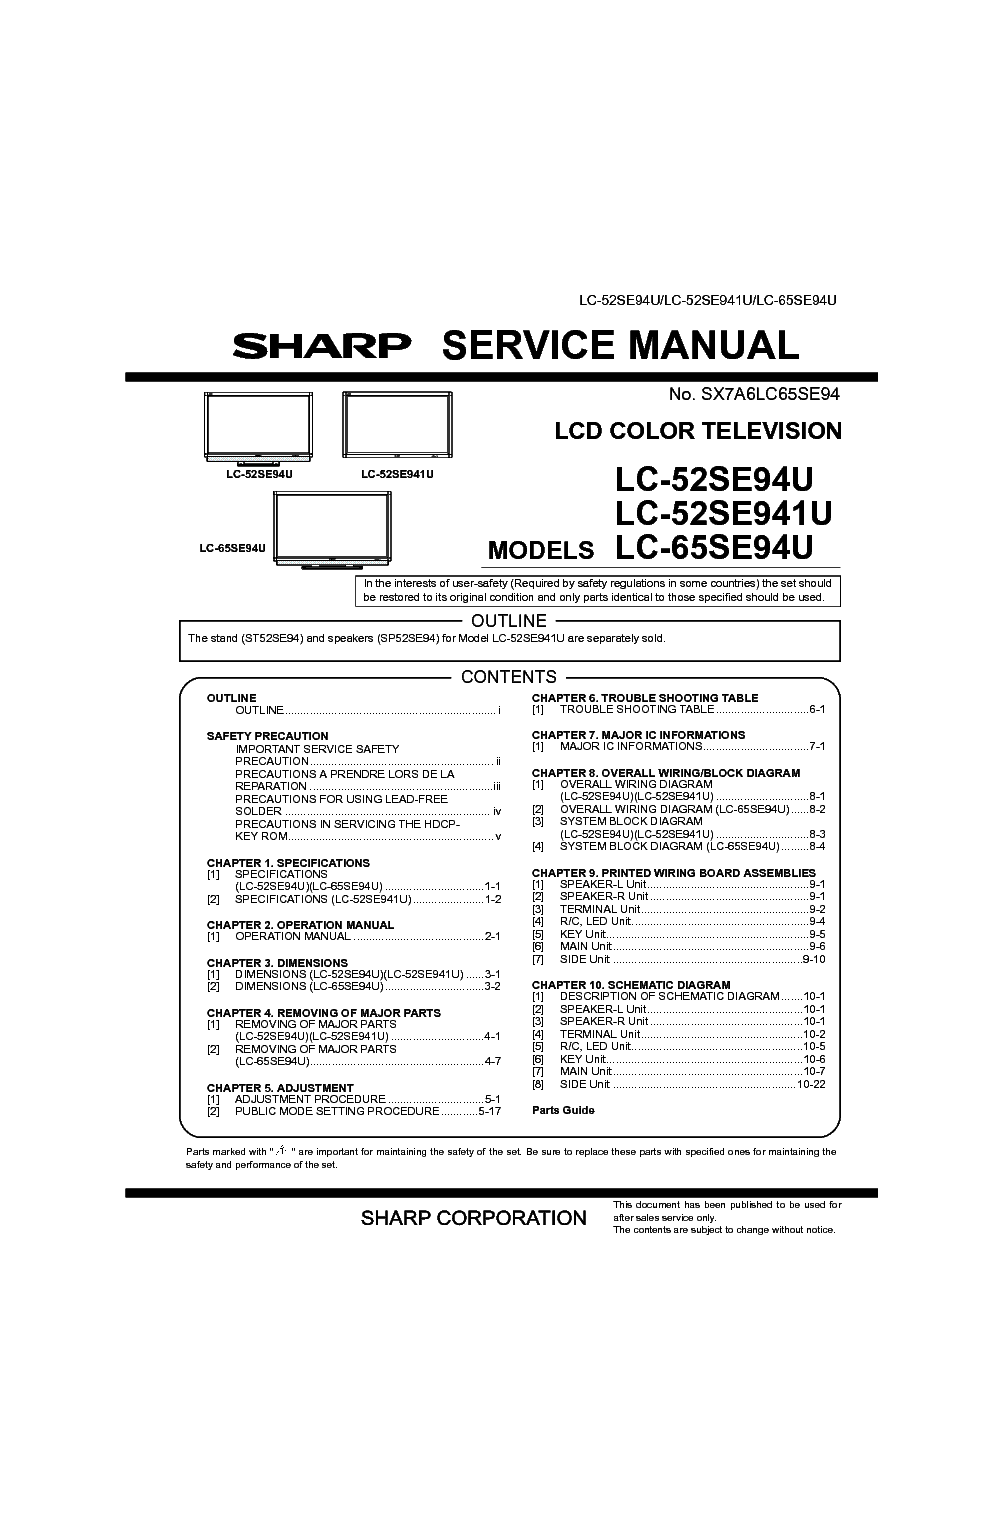 SHARP LC-52SE94U 52SE941U 65SE94U Service Manual download